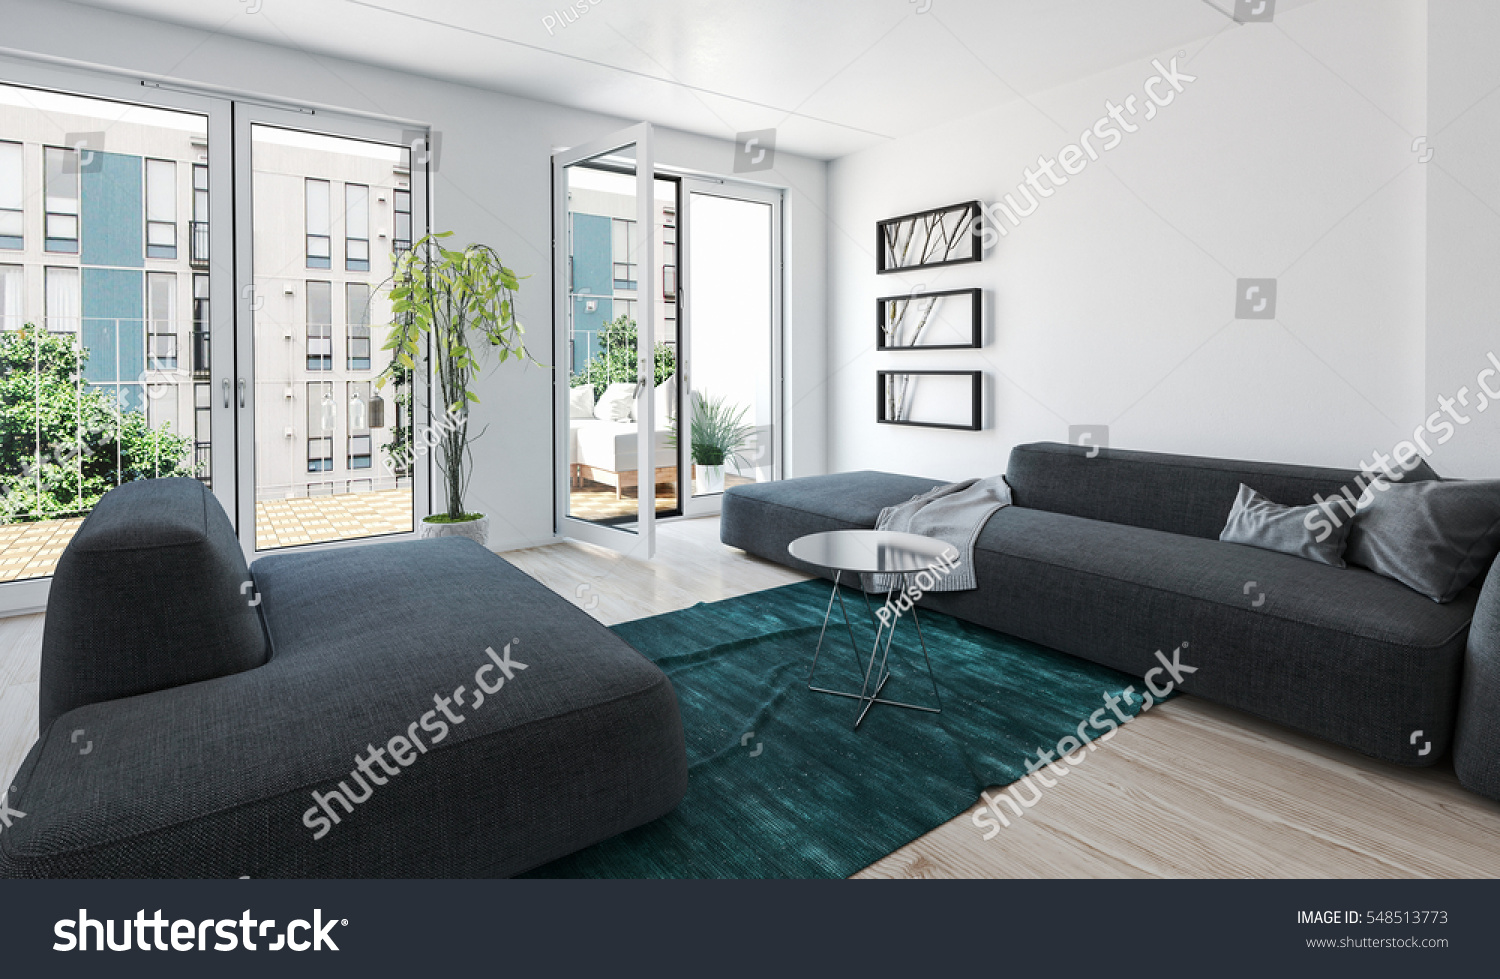 Large Modern Luxury Condo Living Room Interior With Grey Upholstered  Couches And Glass Doors Leading To